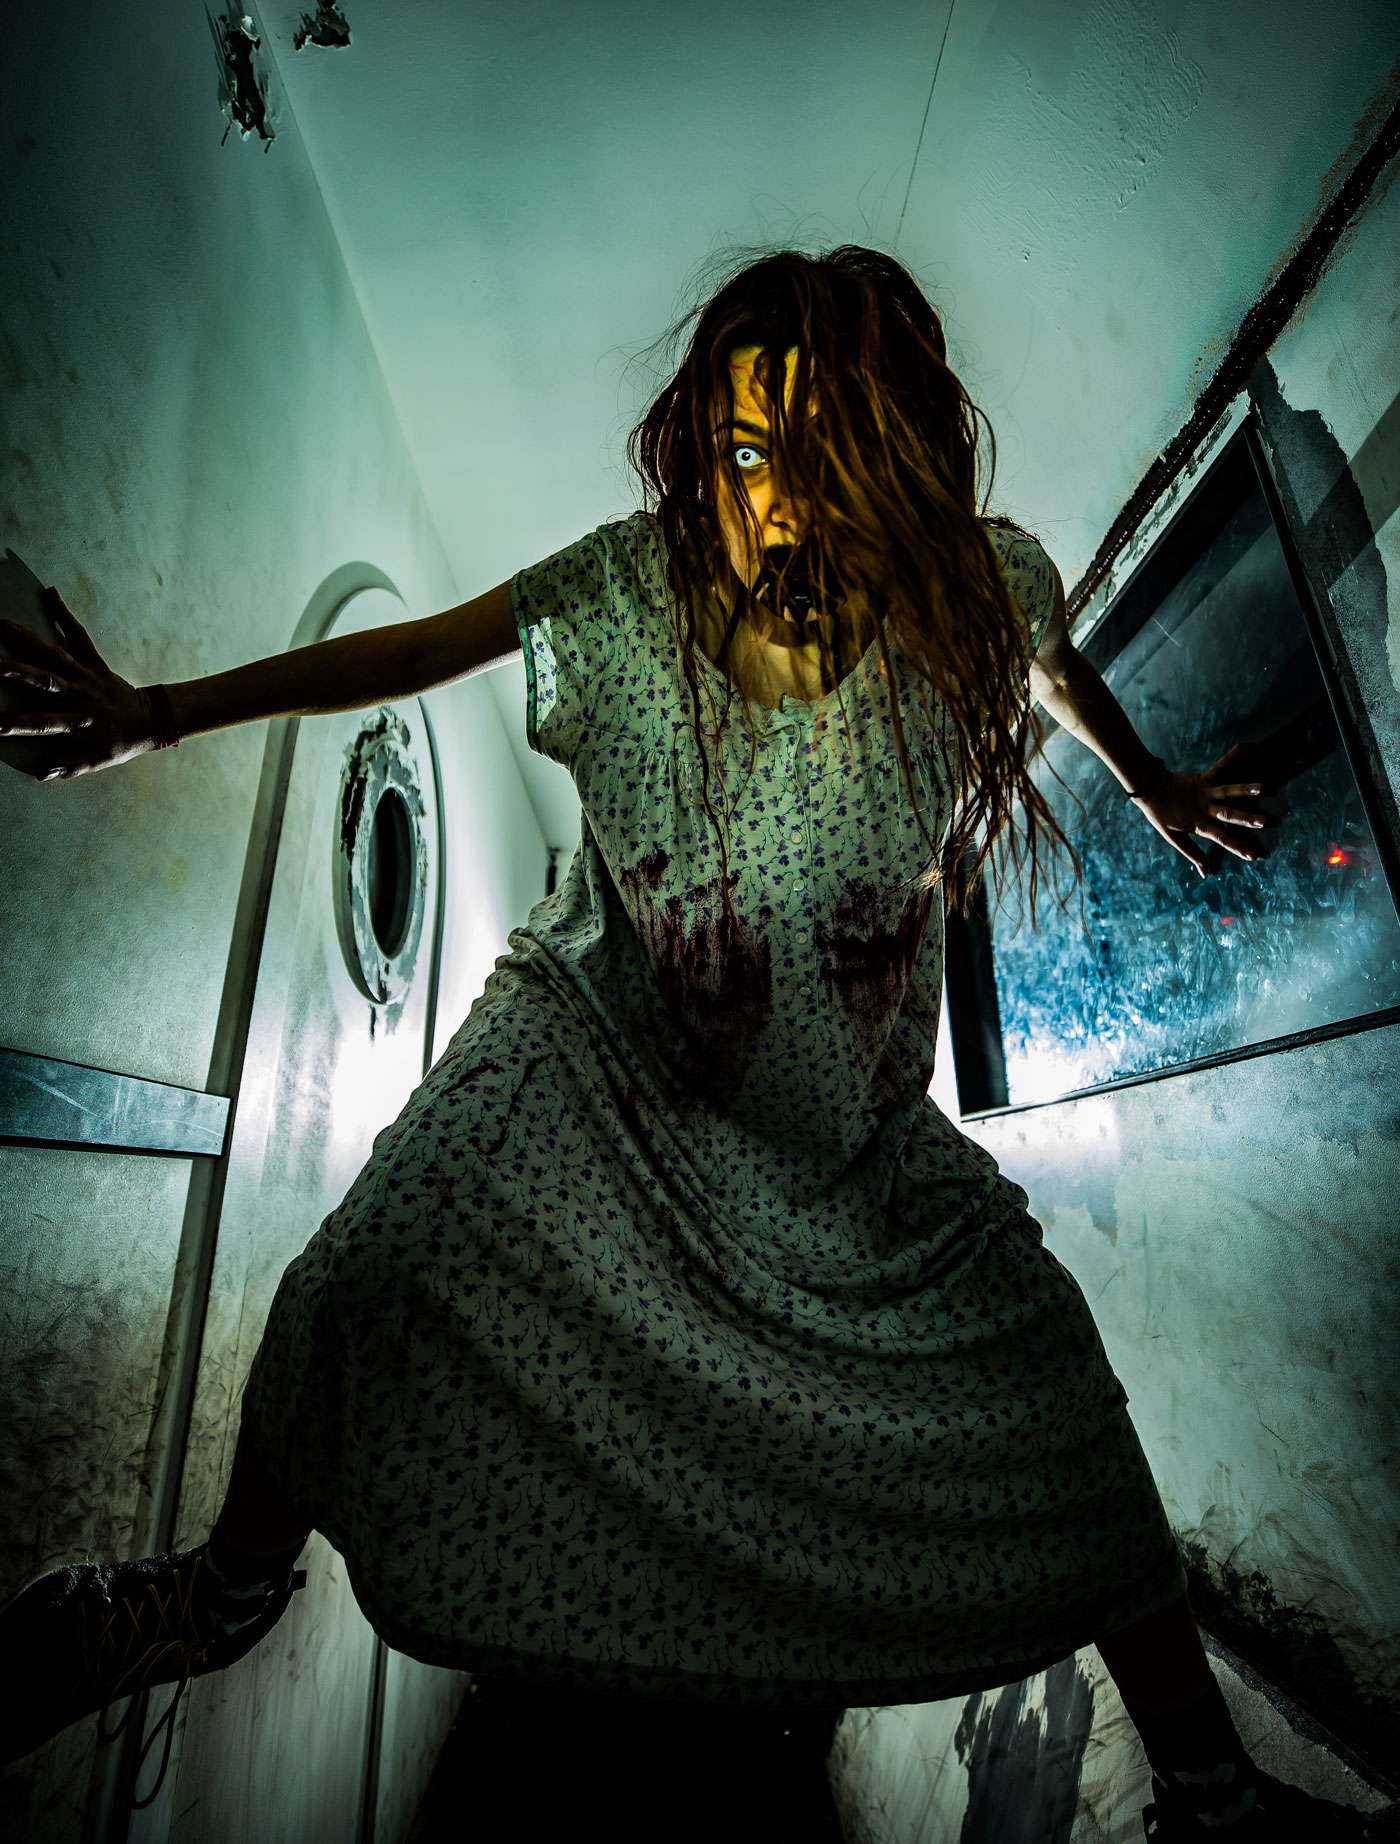 Deadmonton Haunted House and Halloween Store, screaming